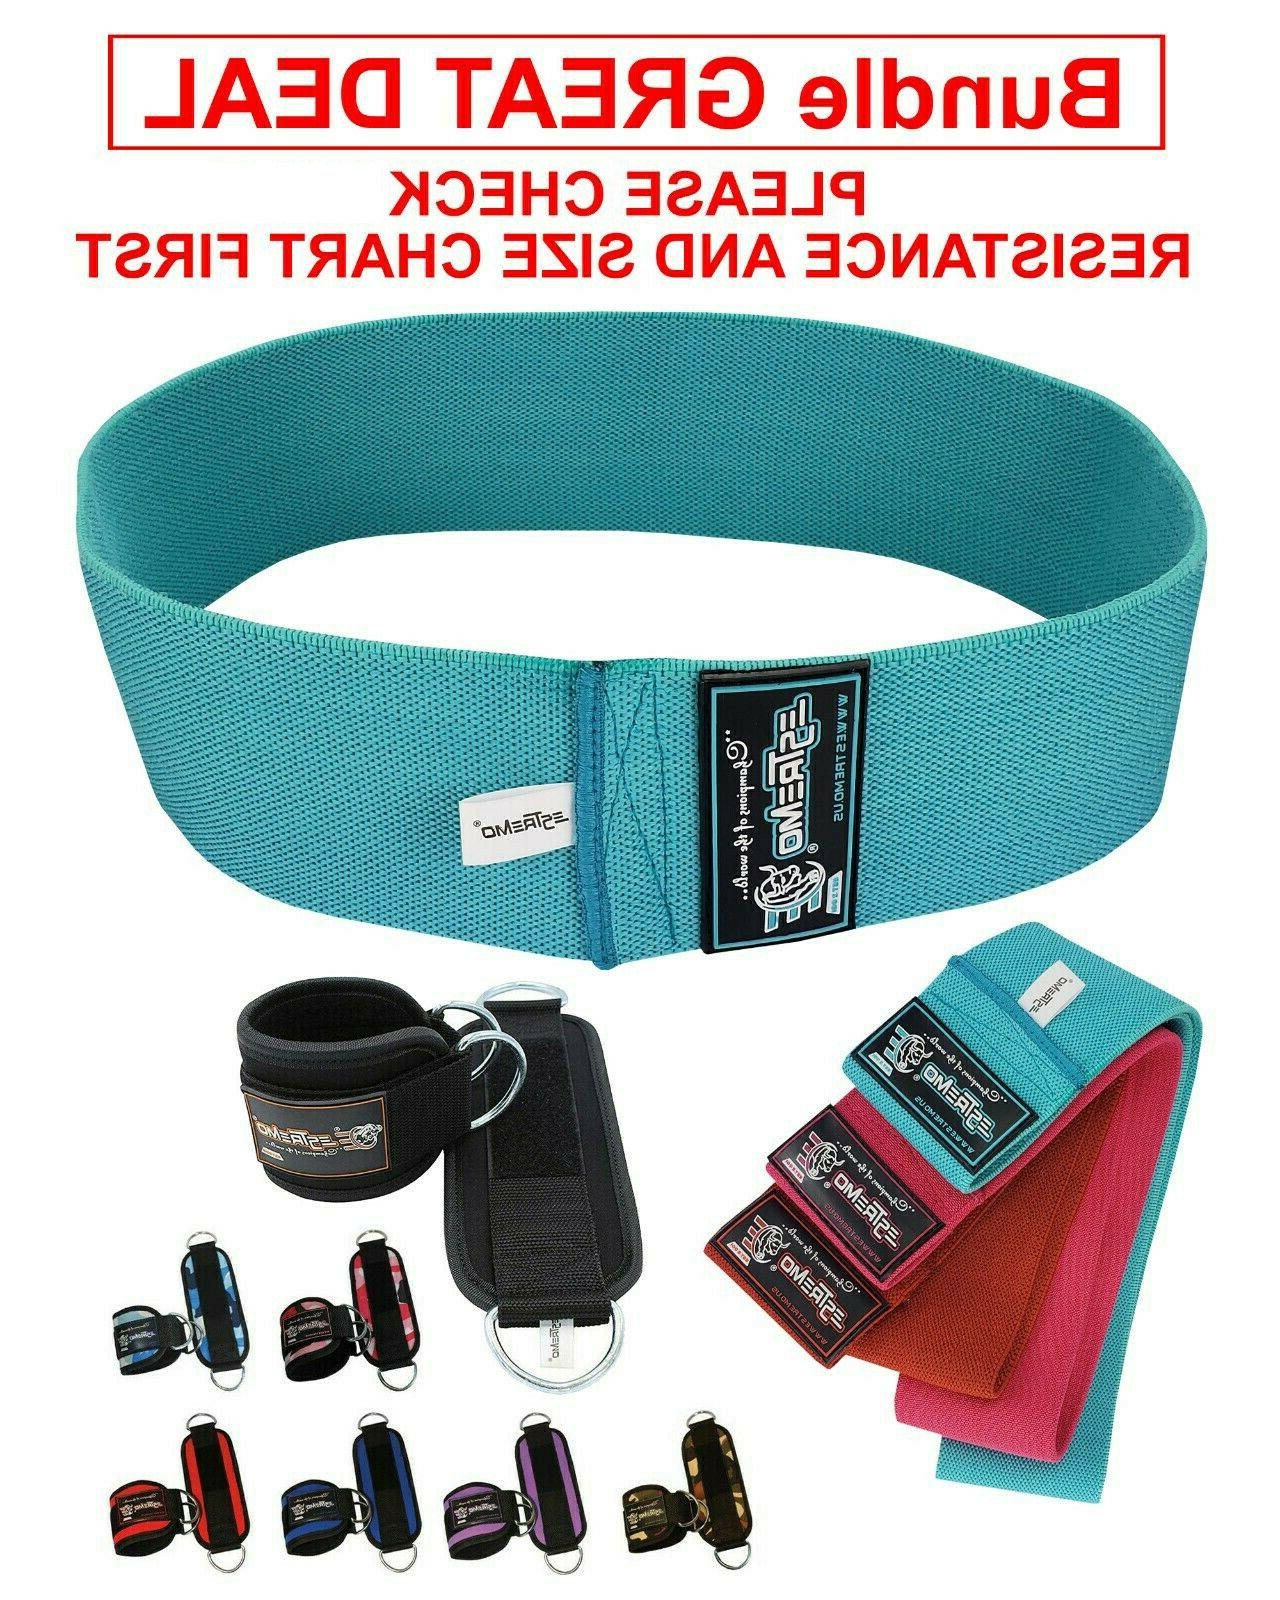 resistance bands and ankle straps for cable